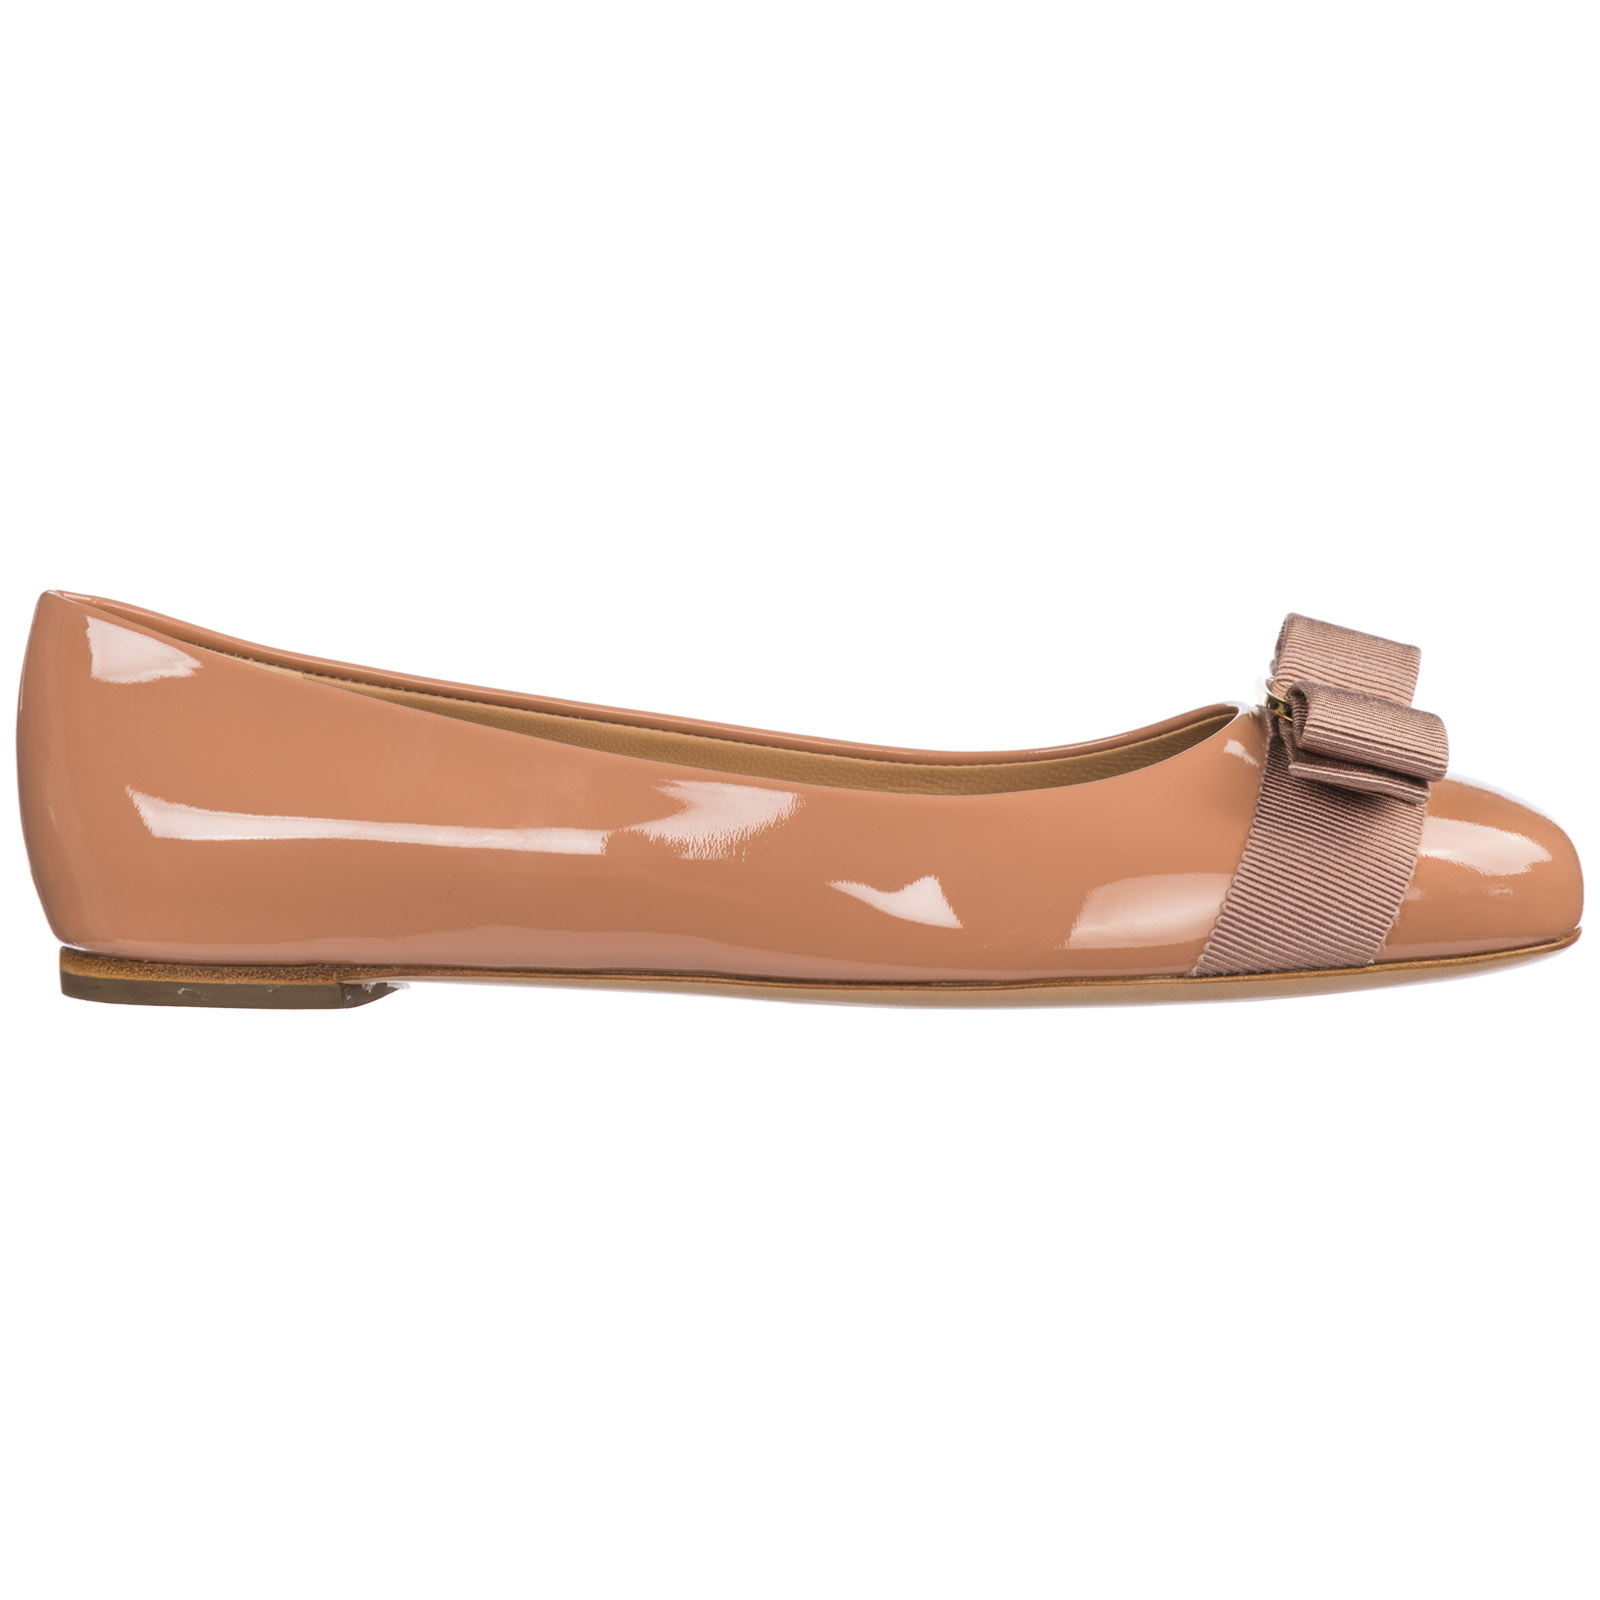 Salvatore Ferragamo Women's Leather Ballet Flats Ballerinas  Varina In Beige